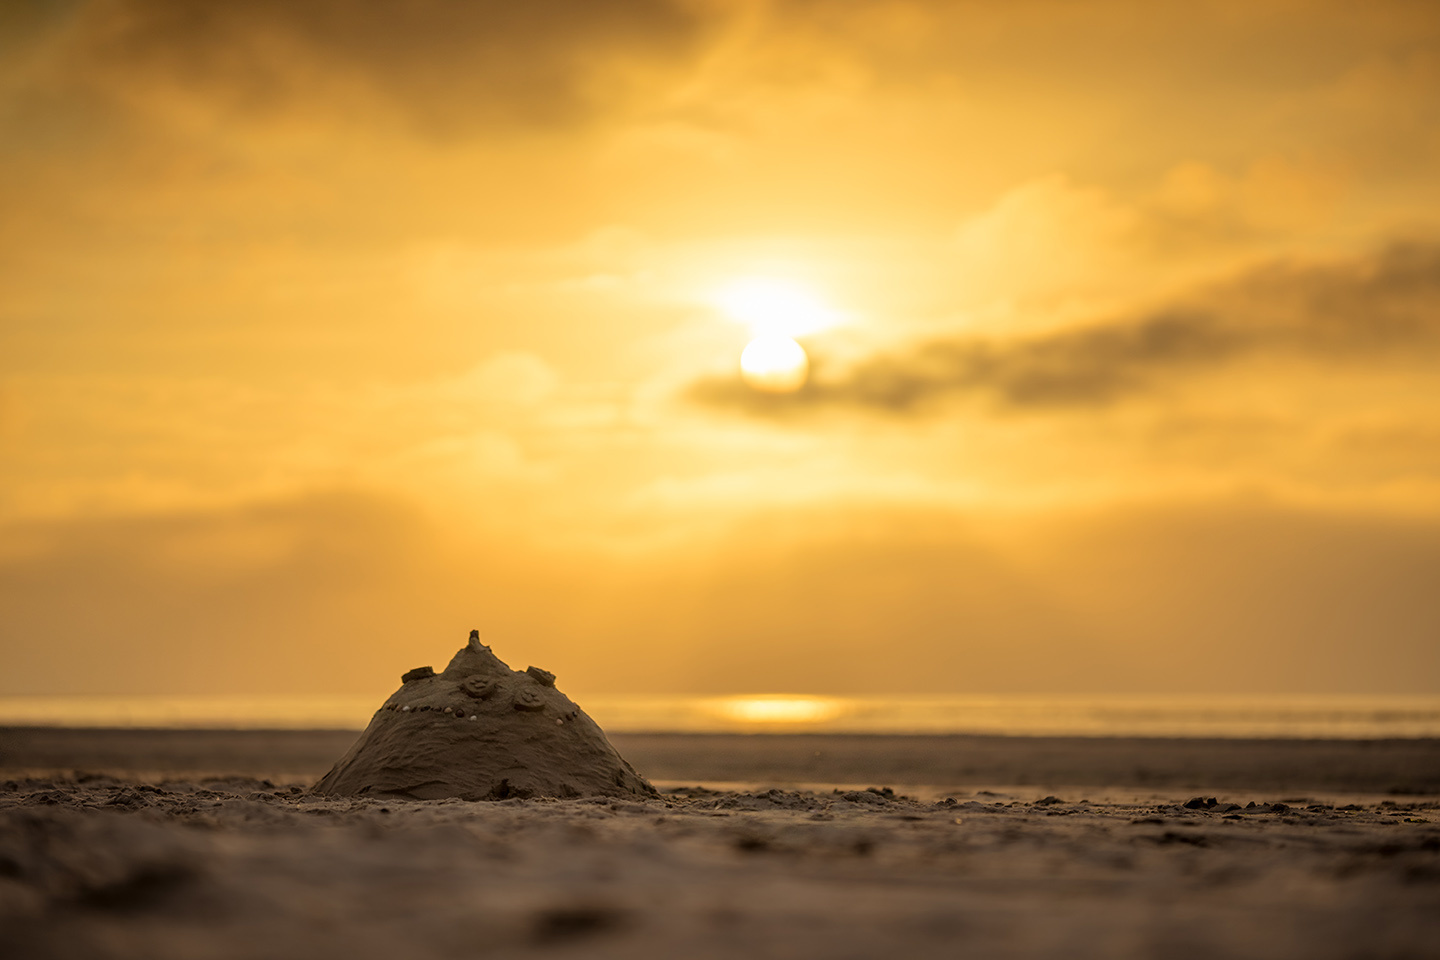 Sandcastle at a beach by Felix Berger